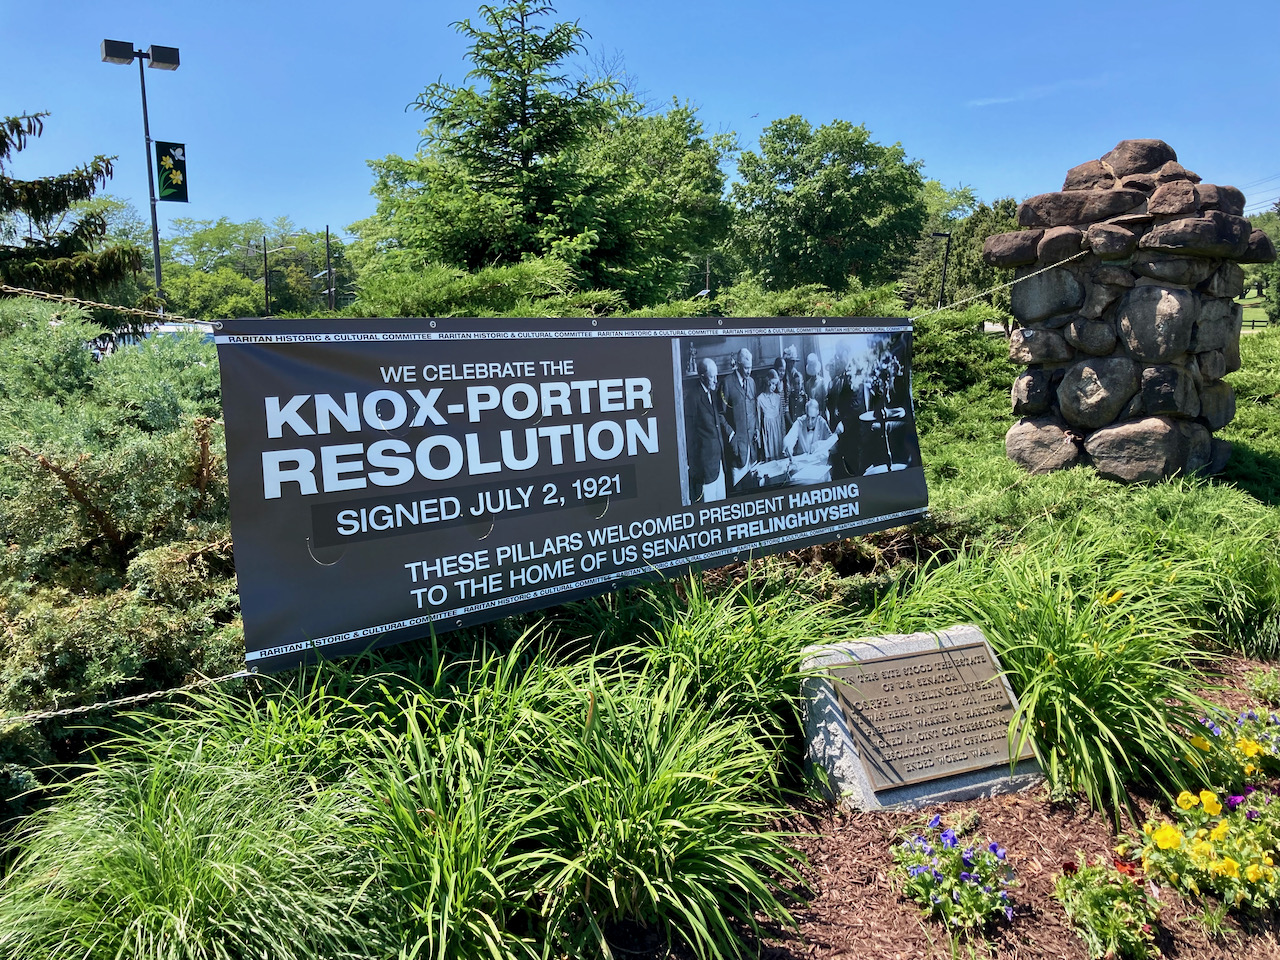 Small stone marker with plaque amid shrubbery. A large sign is hanging in the background, that states WE CELEBRATE THE KNOX-PORTER RESOLUTION SIGNED JULY 2, 1921 - THESE PILLARES WELCOMES PRESIDENT HARDING TO TEH HOME OF US SENATOR FRELINGHUYSEN.